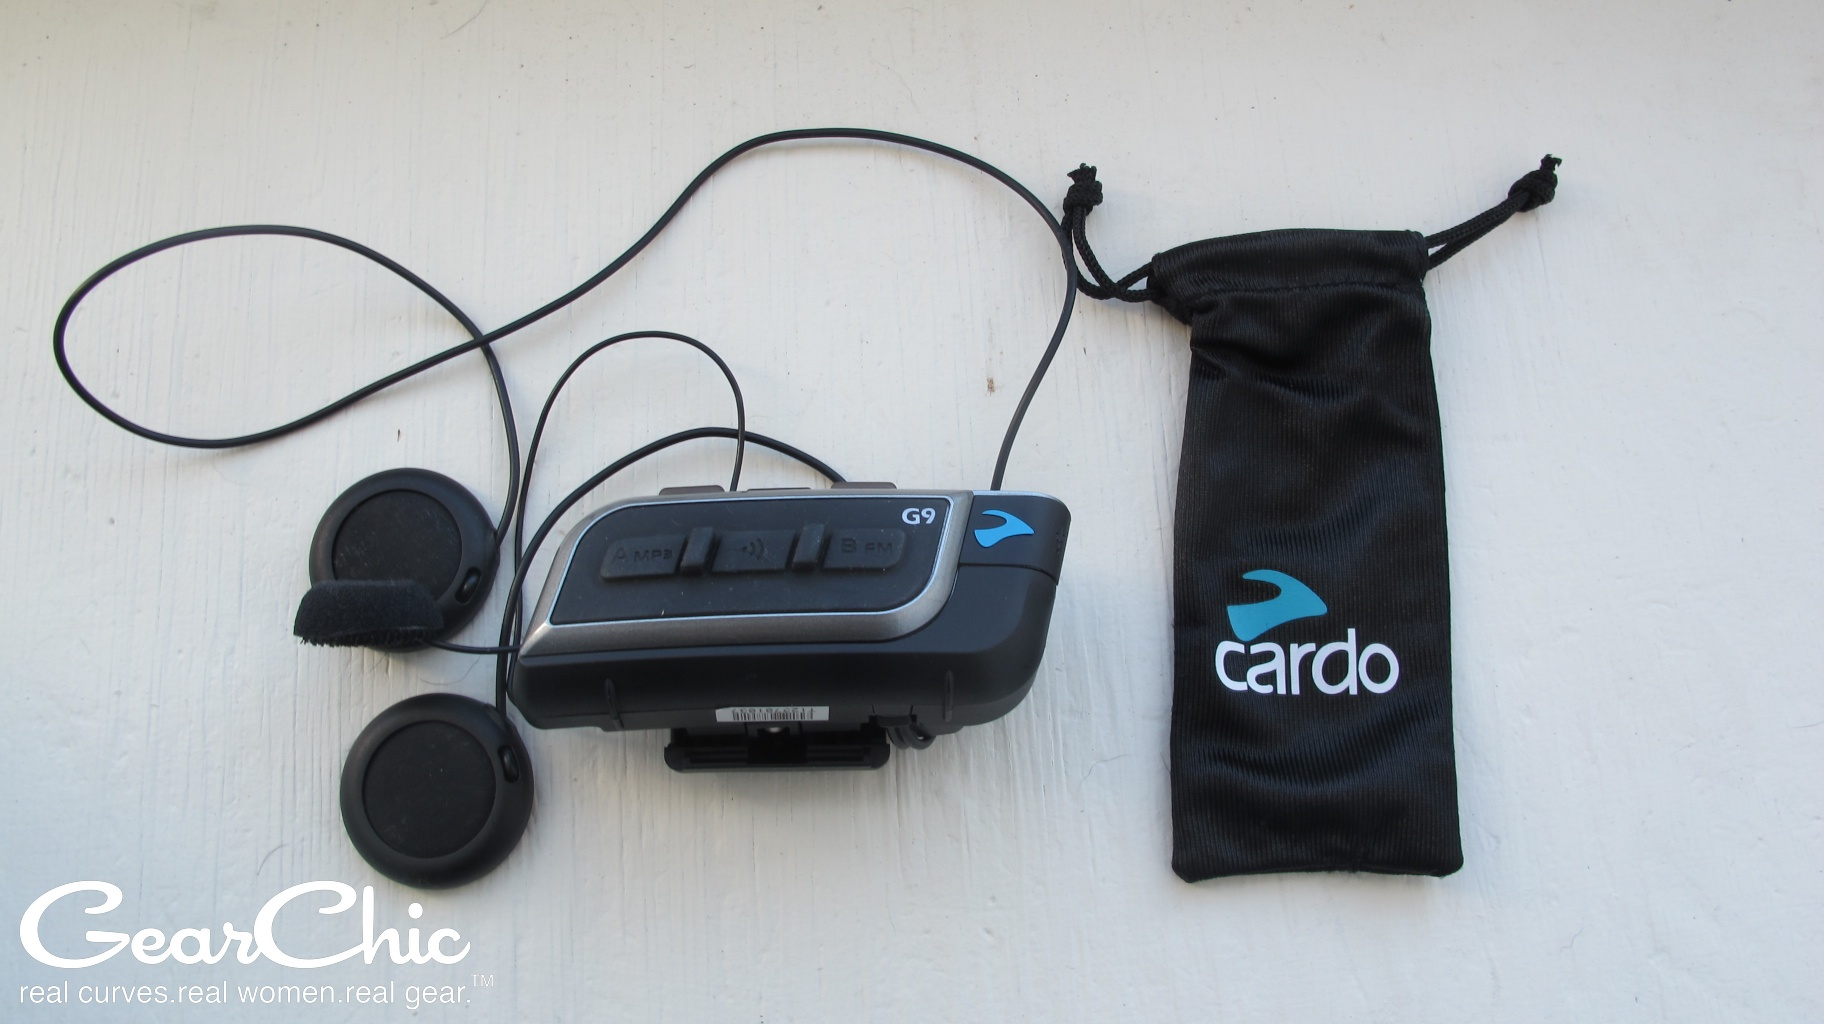 Cardo Scala Rider G9 Headset And Intercom Review By Gearchic Com Gearchic